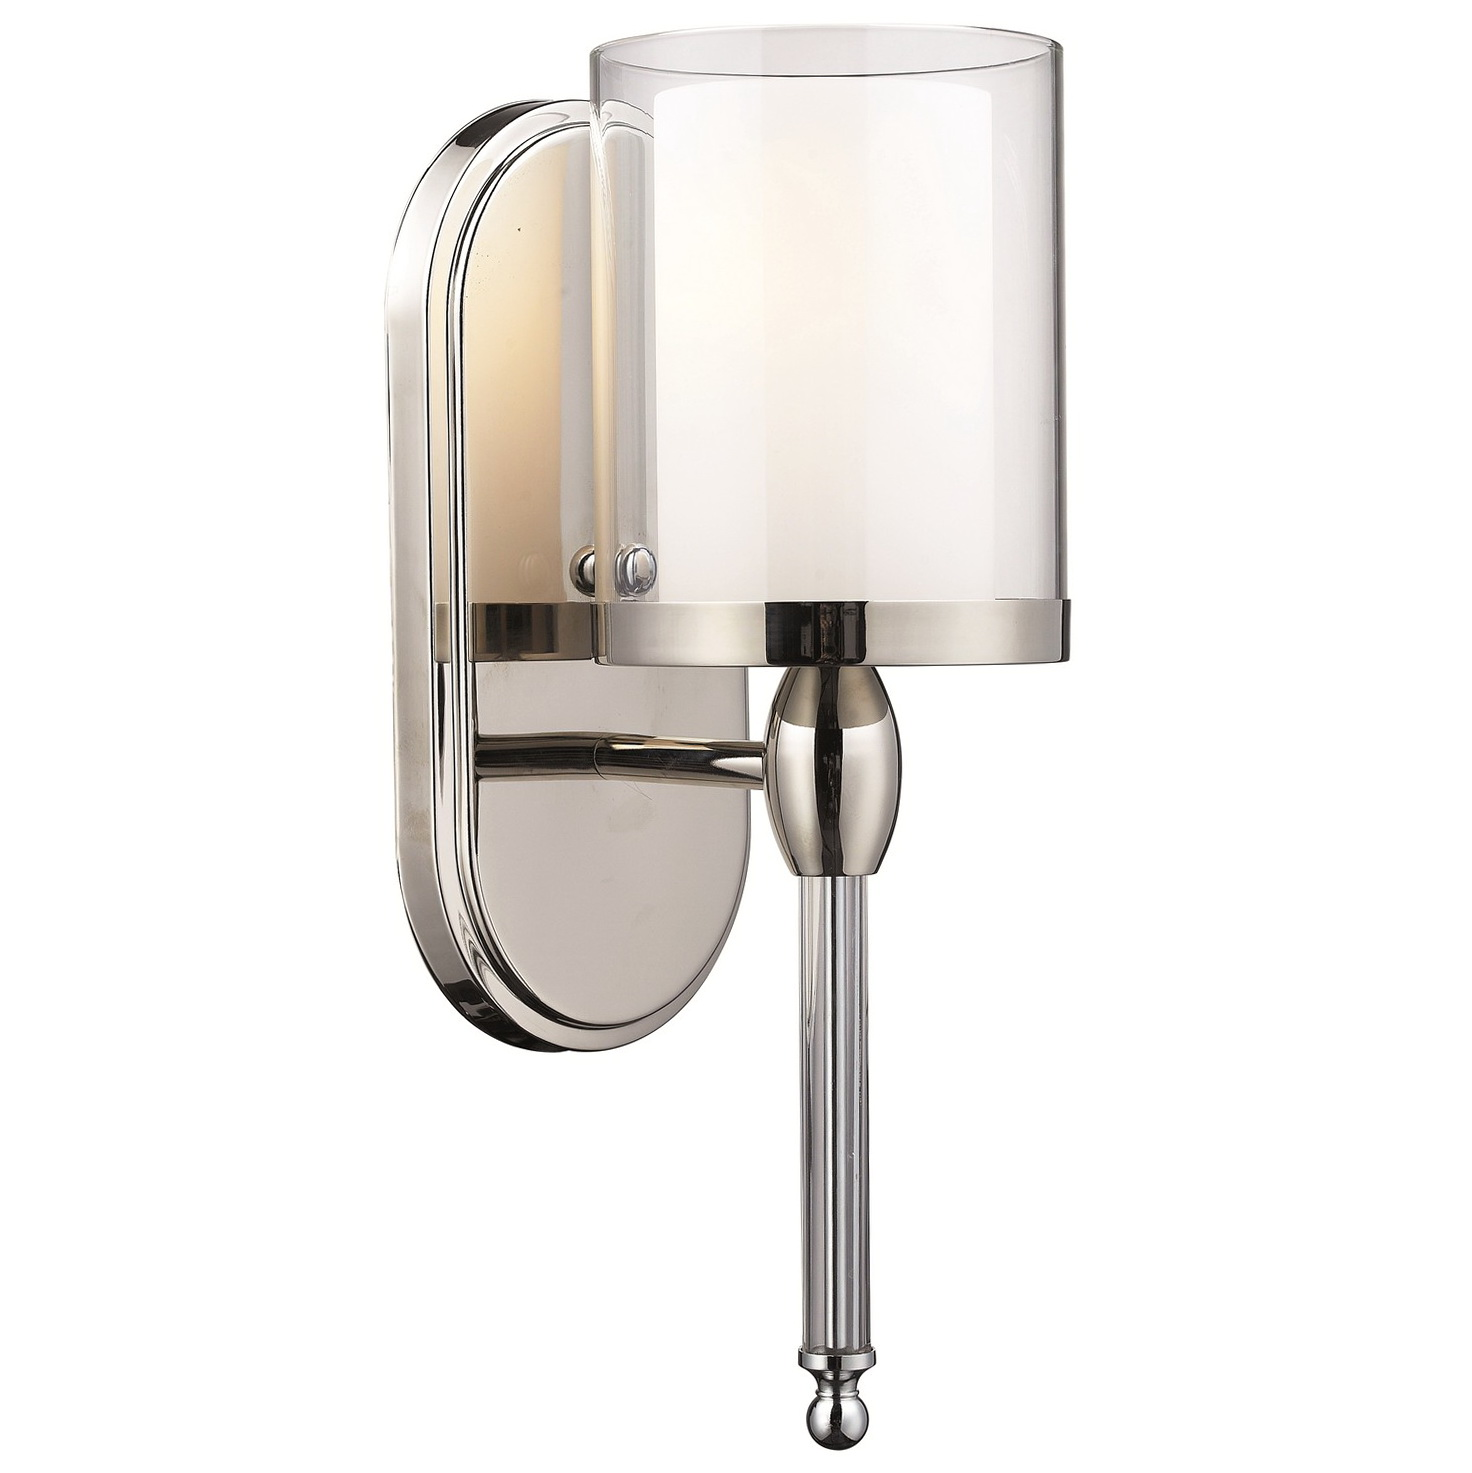 Bathroom Electrical Outlet Bathroom Wall Sconce With Electrical Outlet Home Design Ideas